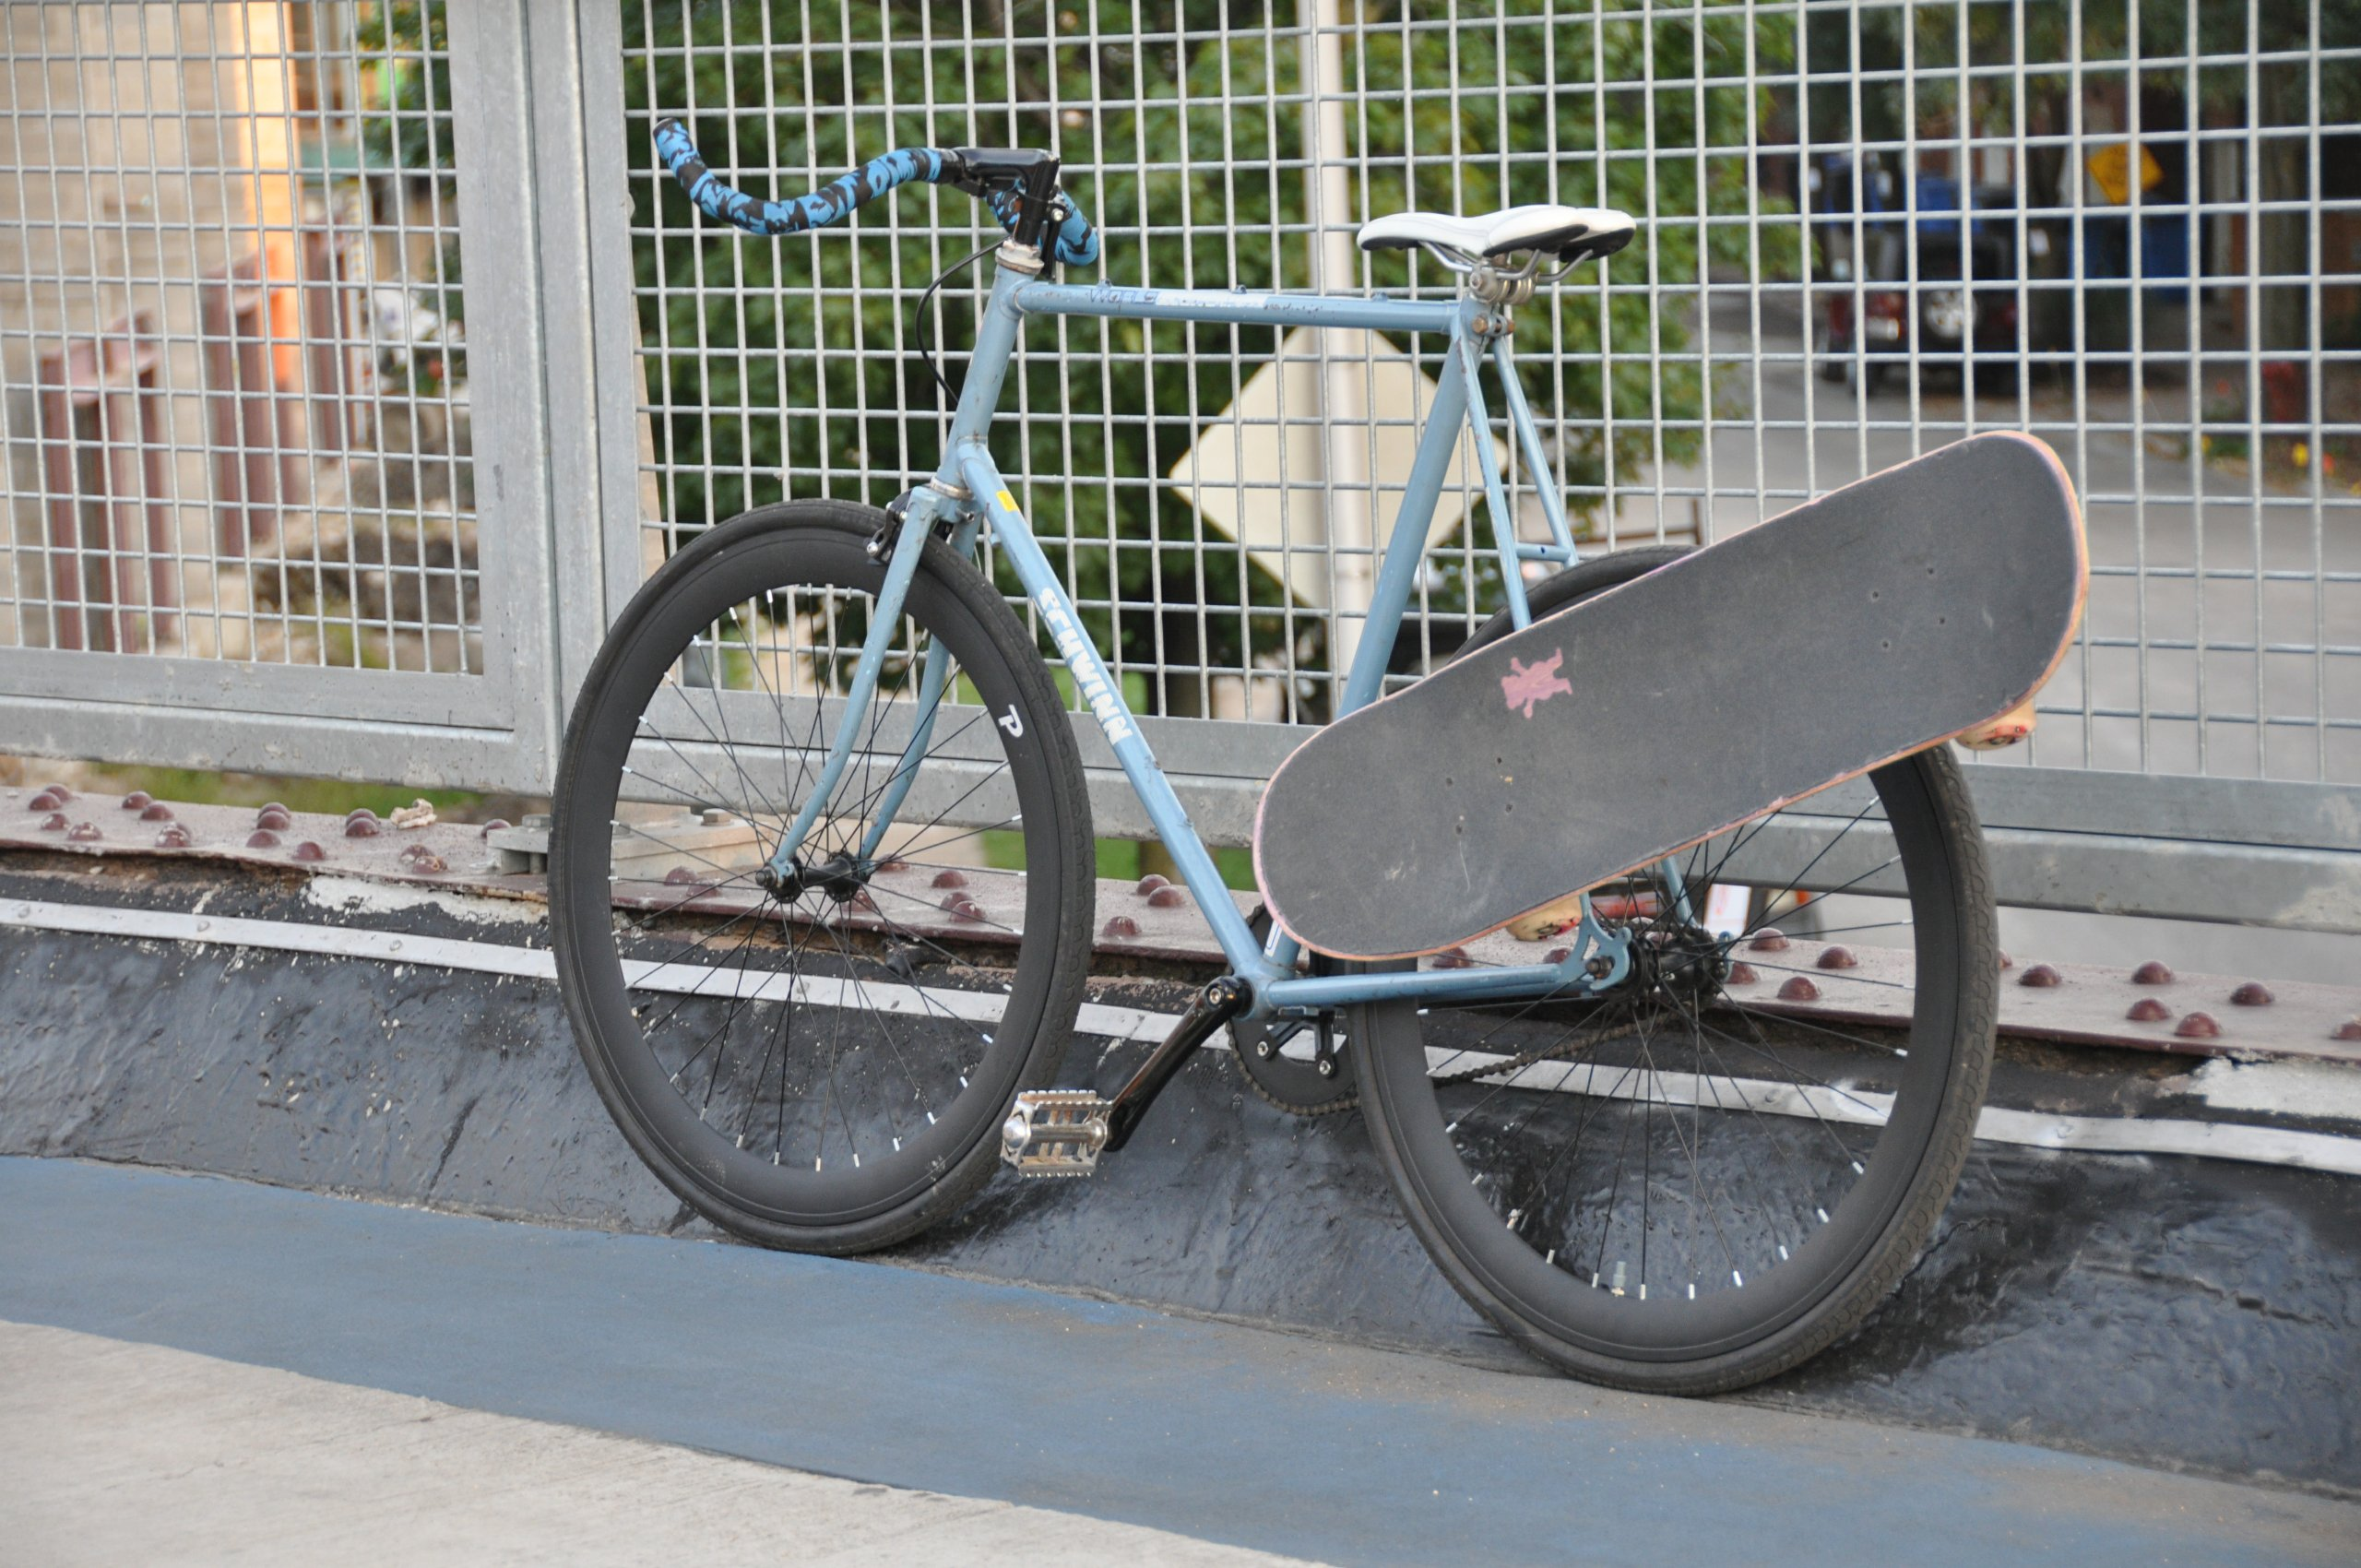 Accrocher son skateboard son bike c 39 est possible - Accrocher un velo au mur ...